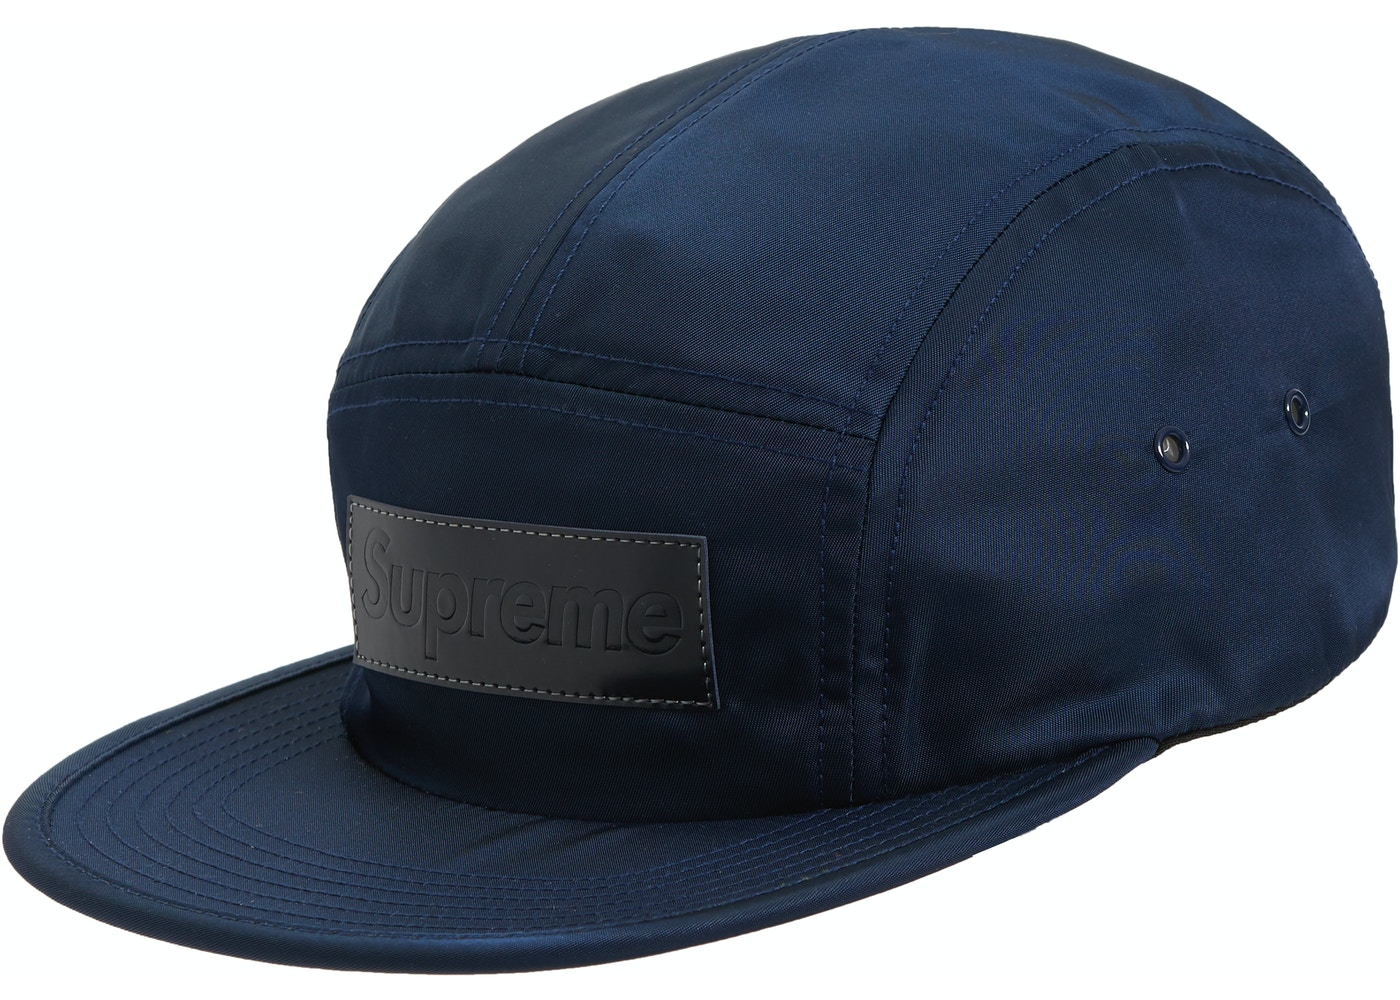 Supreme Patent Leather Patch Camp Cap Navy - FW18 427218efe5f